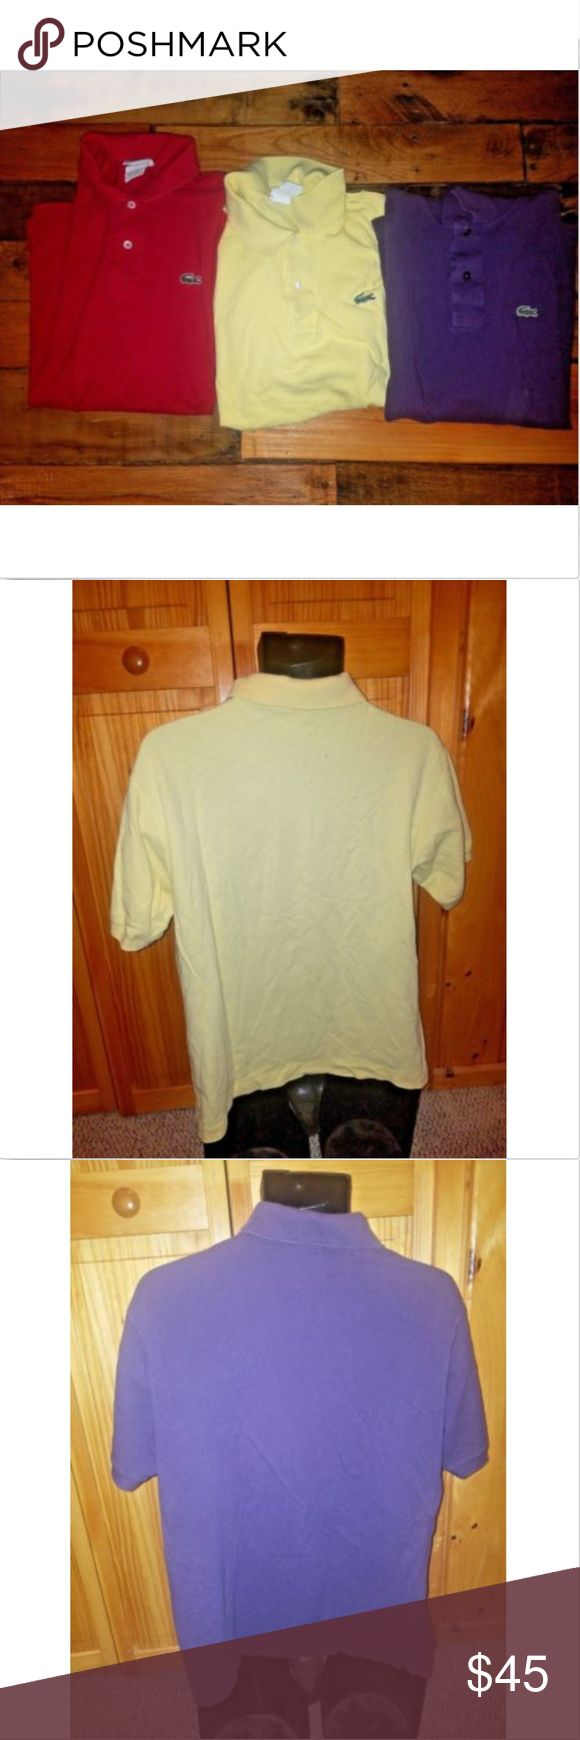 Lacoste Size 6 Lot of 3 Polos Up for sale is a set of 3 Lacoste polos. These polos come in red, yellow and purple. They are in great shape no holes, rips or stains. They are a size 6 or large in the US. Lacoste Shirts Polos